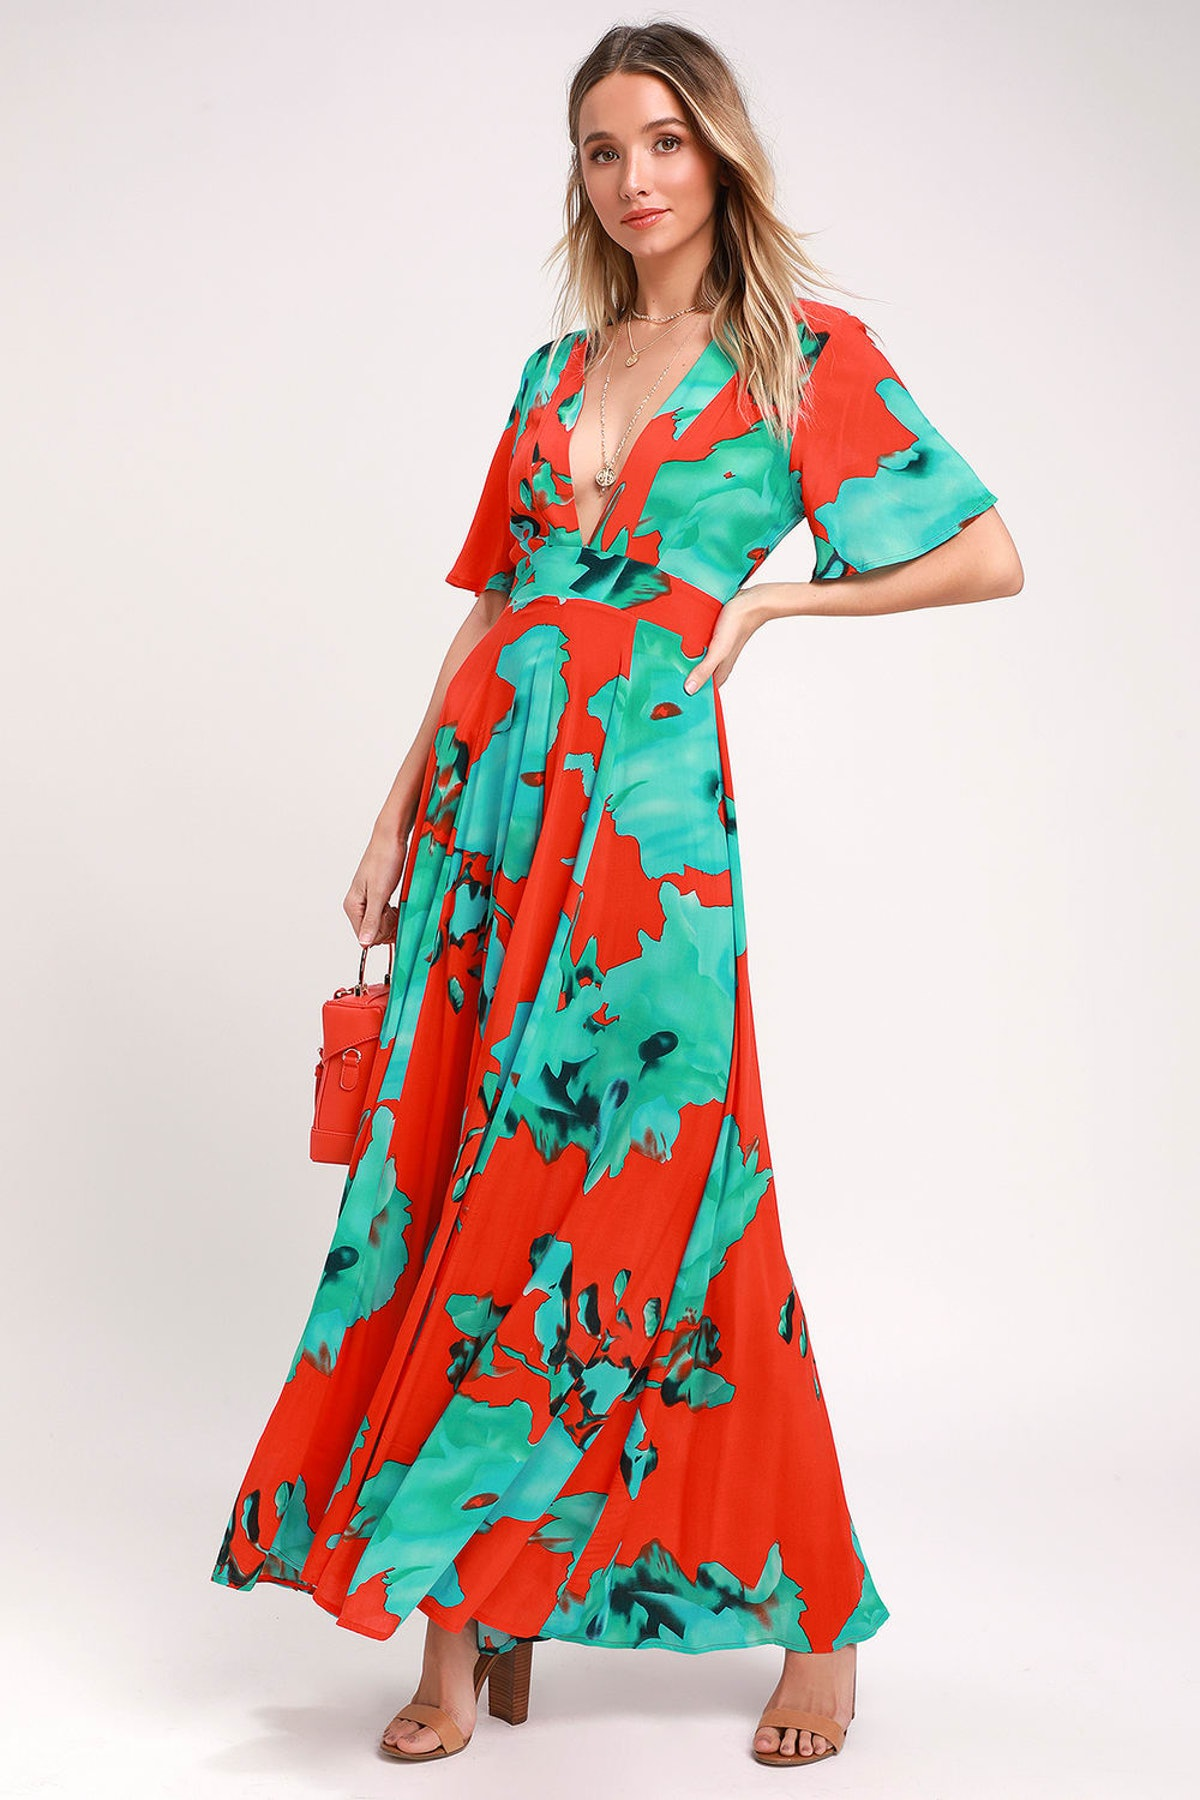 Temptress Red And Teal Blue Print Maxi Dress